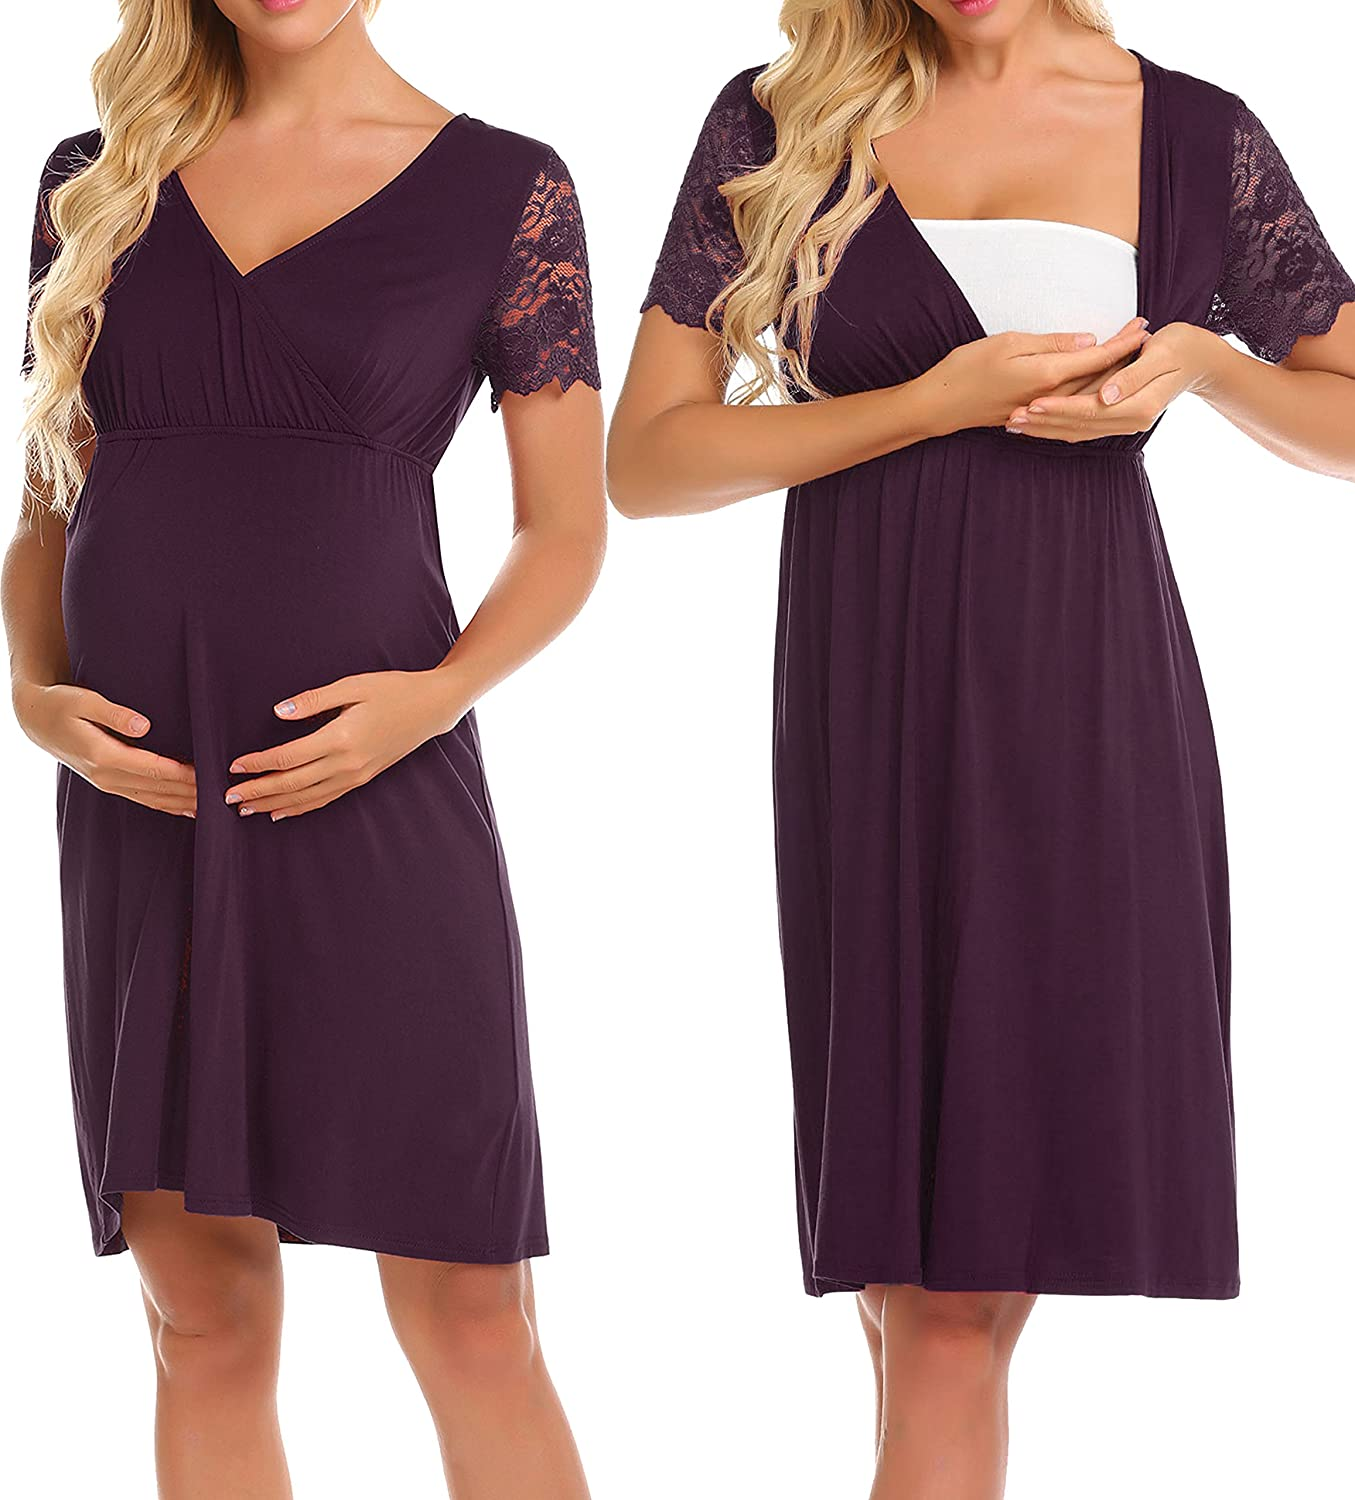 Ekouaer Womens Labor/delivery/Nursing Hospital Gown Maternity Lace Short Sleeve Sleep Dress ERK008891#